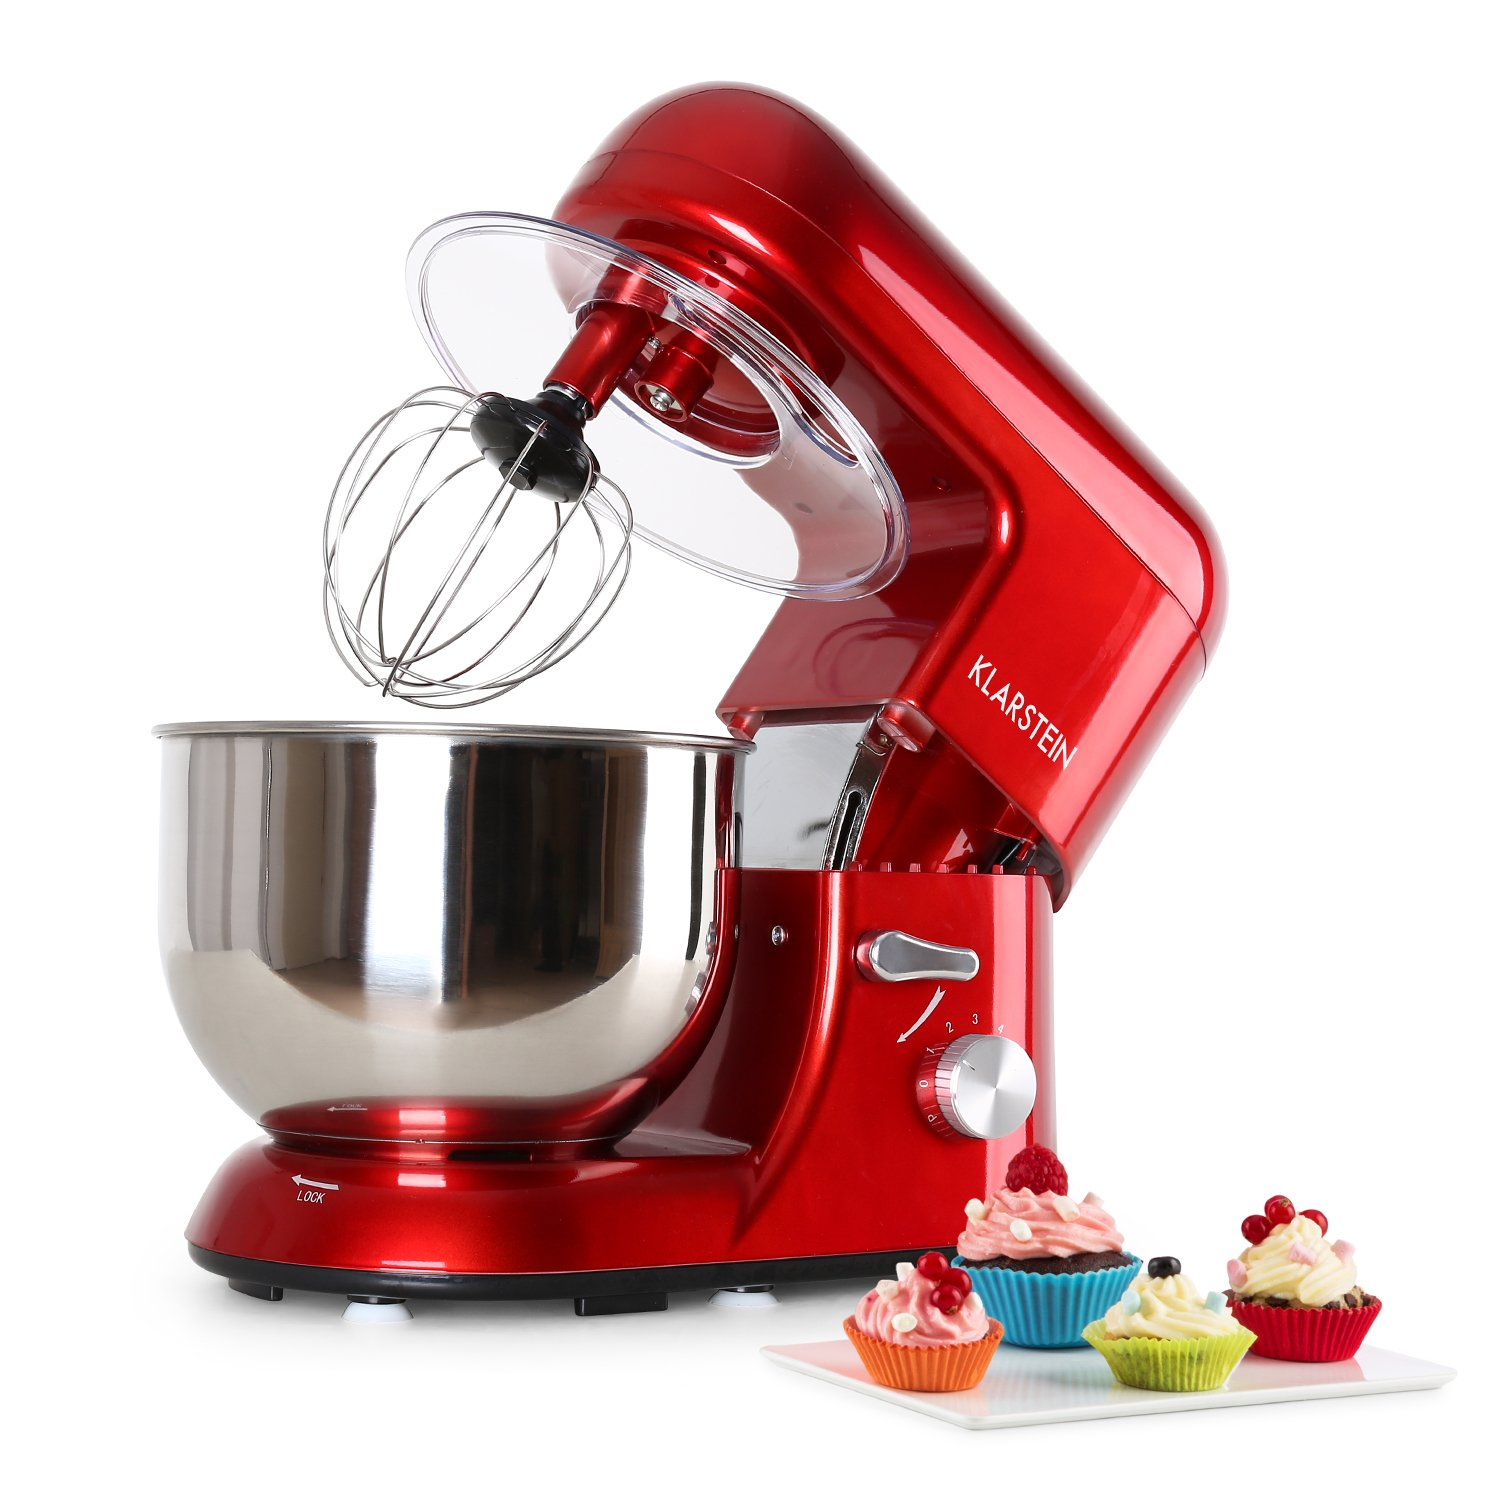 KLARSTEIN Bella • Tilt-Head Stand Mixer • Dough Hook, Flat Beater, Wire Whip • 650 Watts • 1.1 HP • 5.5 qt Stainless Steel Bowl • Planetary Mixing Action • 6 Speeds • Multifunctional (Red)